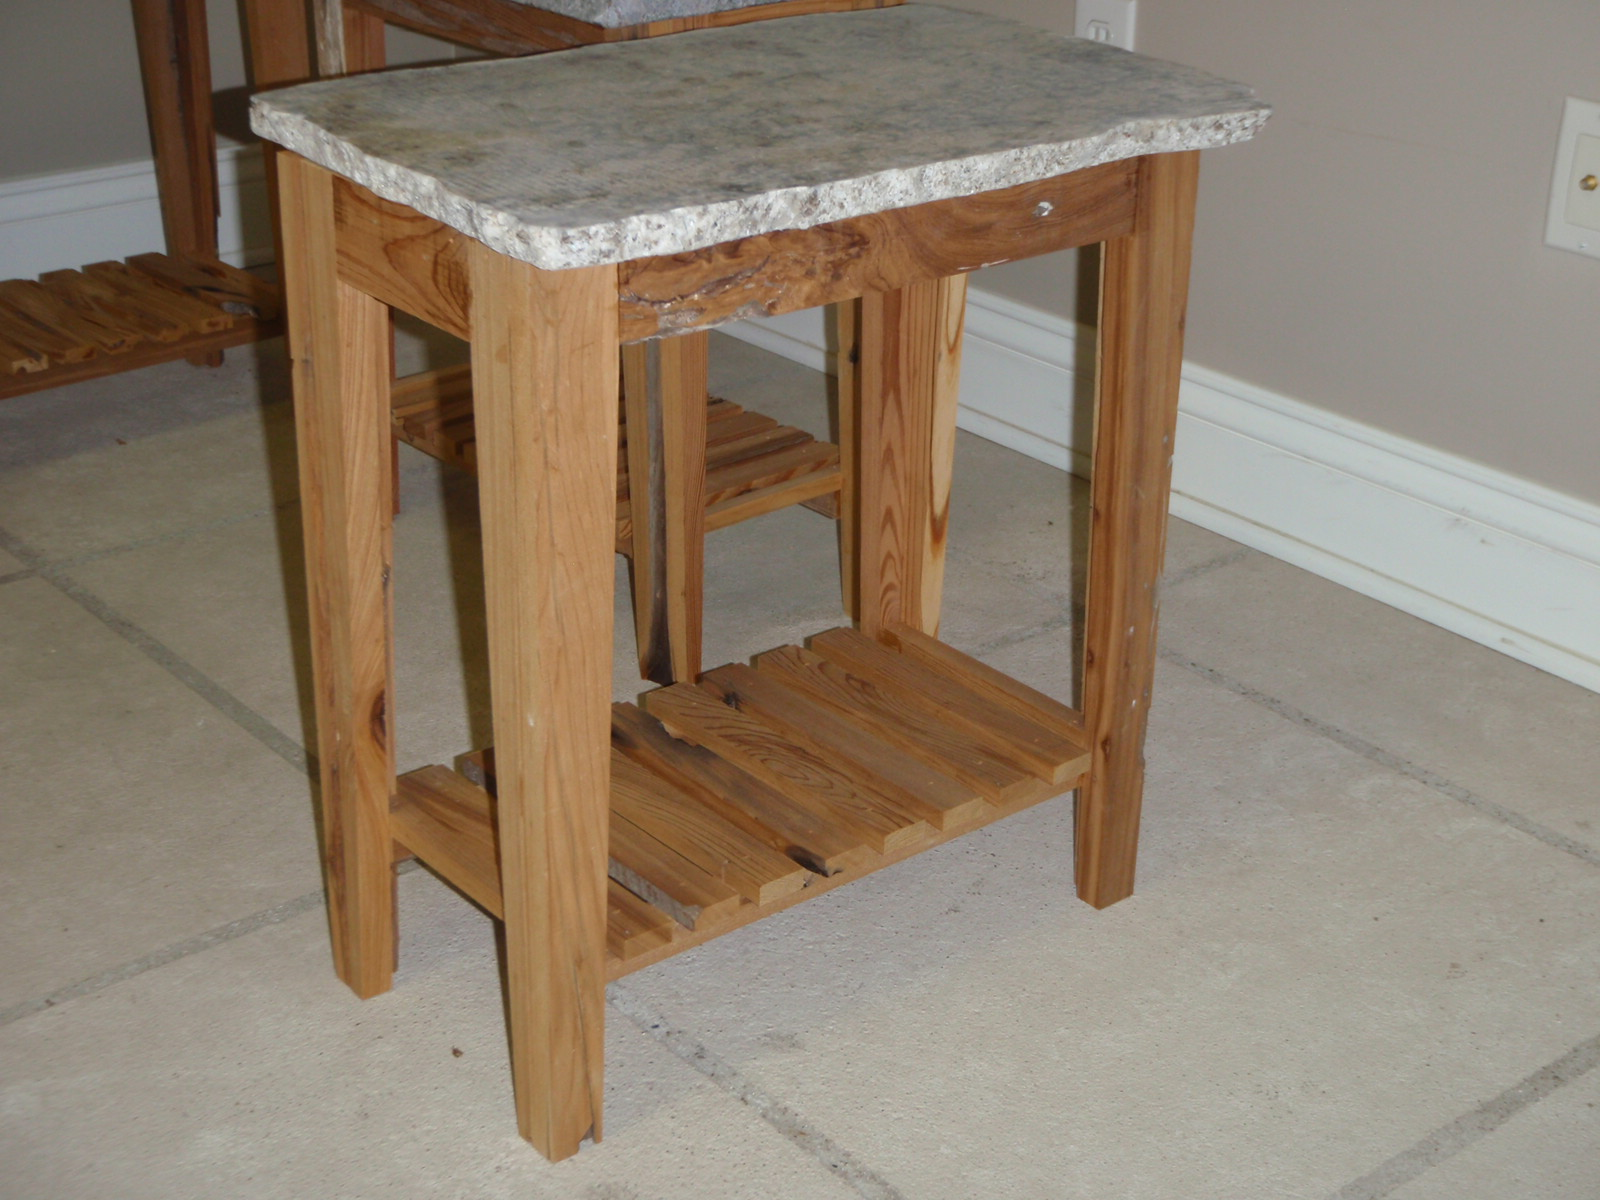 Gifts and designs granite tables hand made with reclaimed lumber